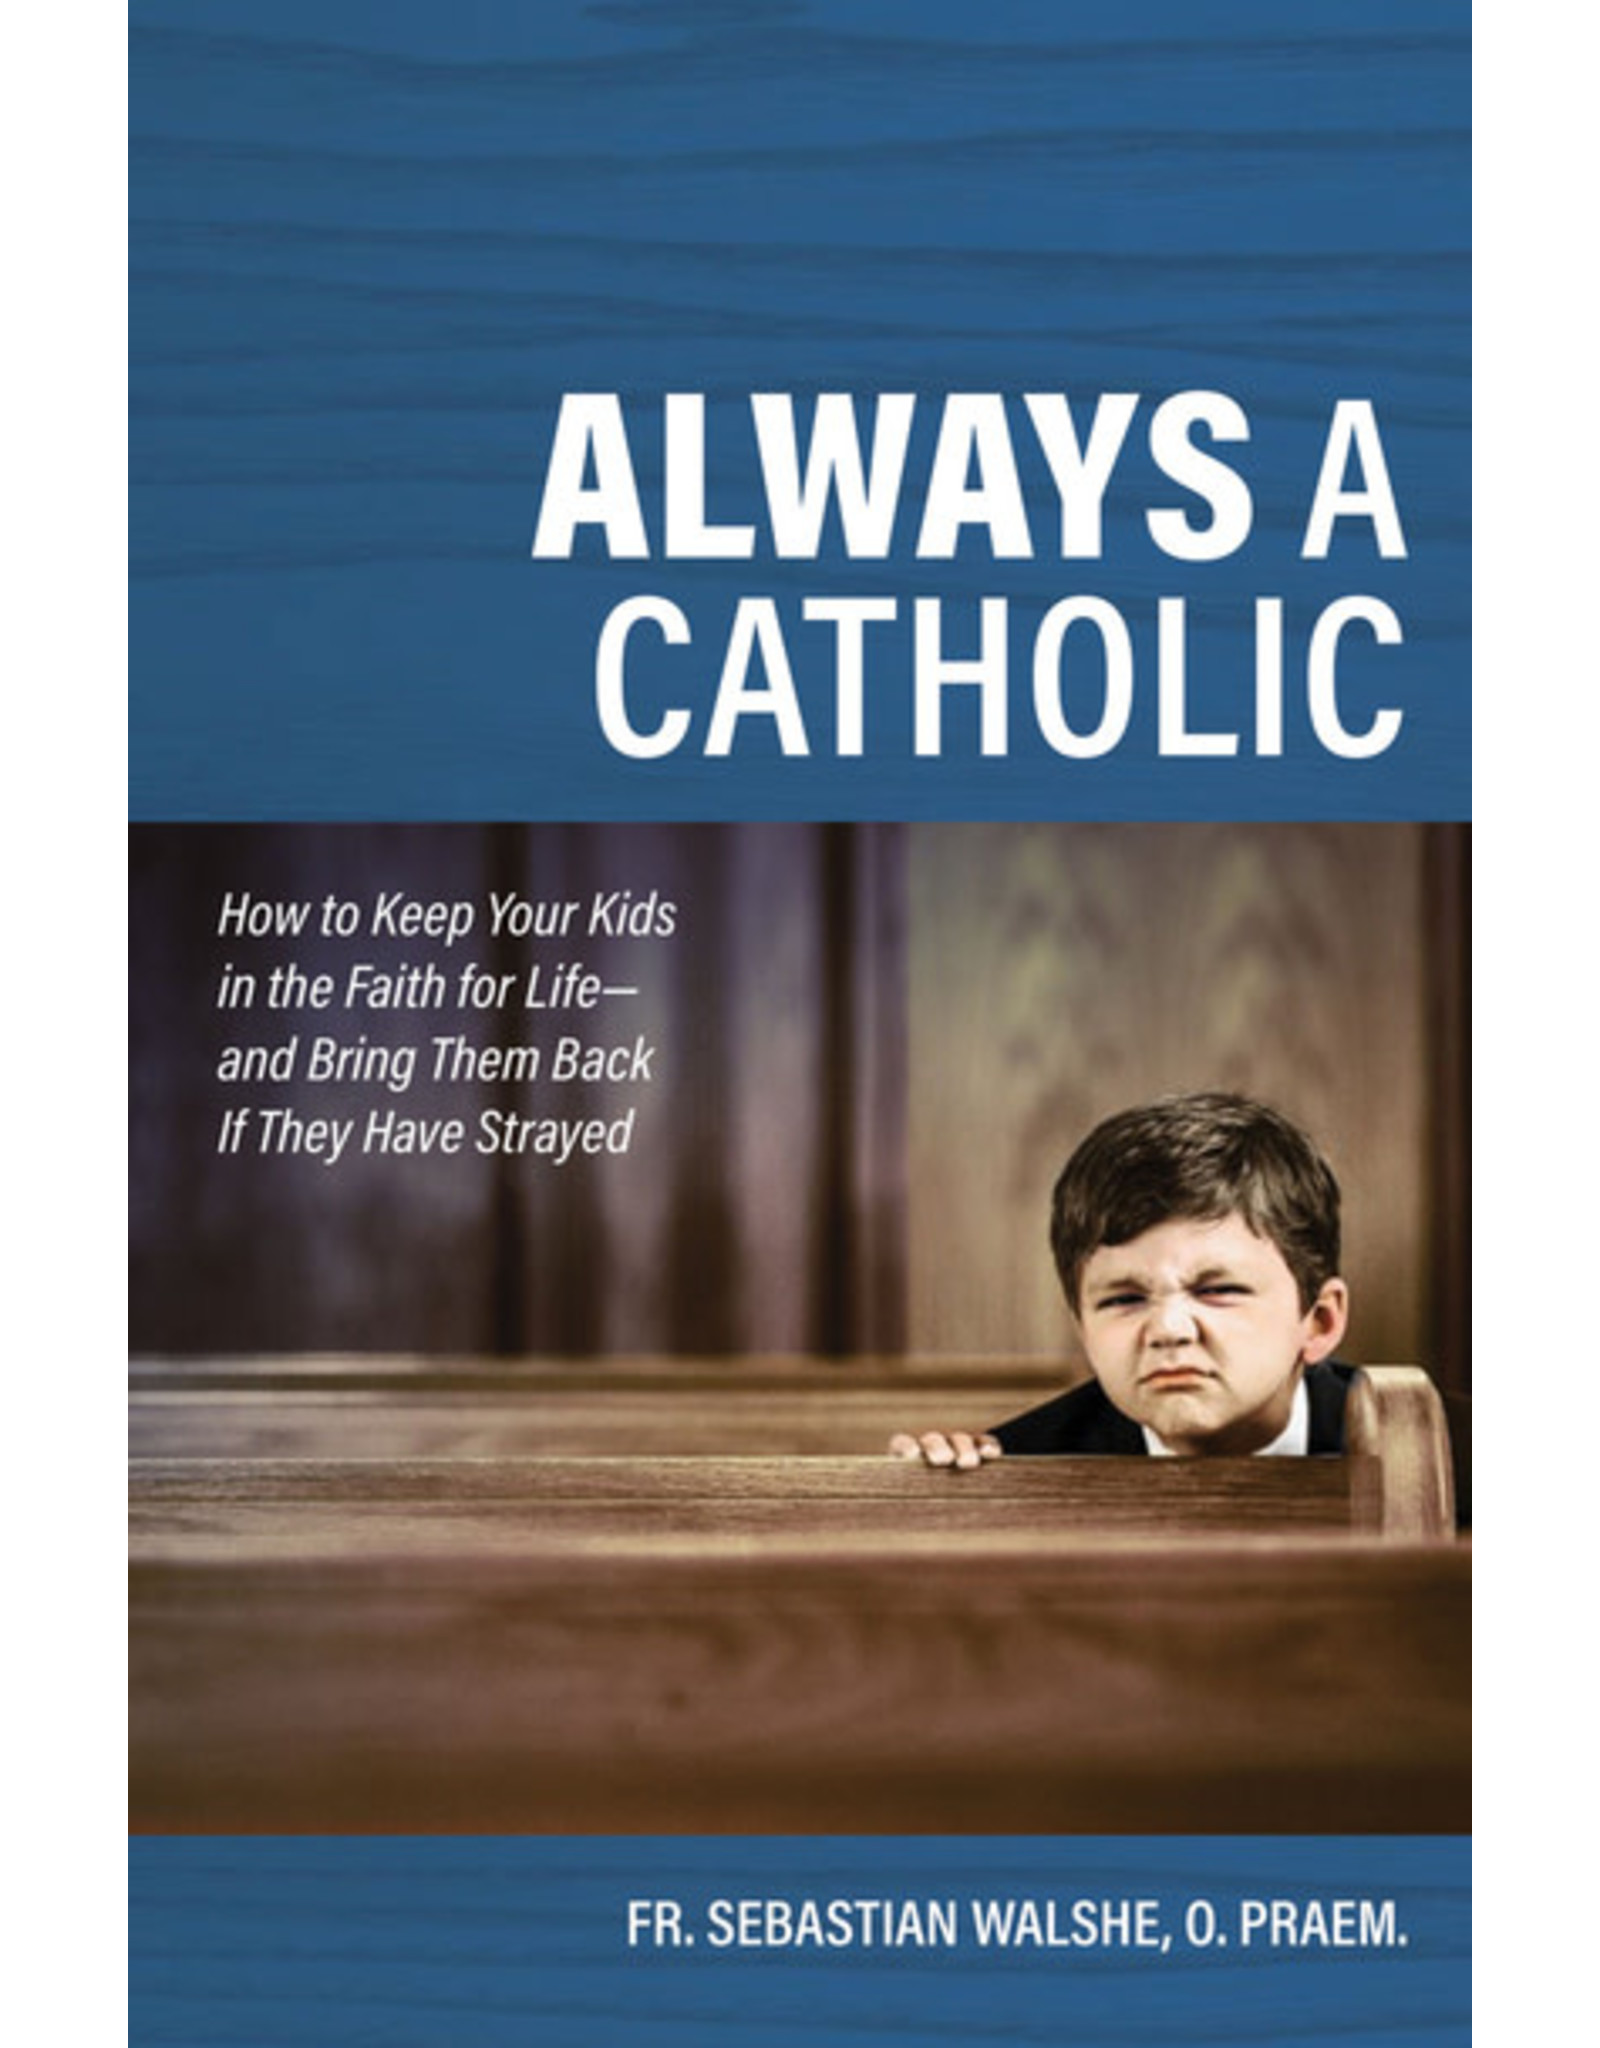 Always a Catholic: How to Keep Your Kids in the Faith for Life-& Bring Them Back If They Have Strayed